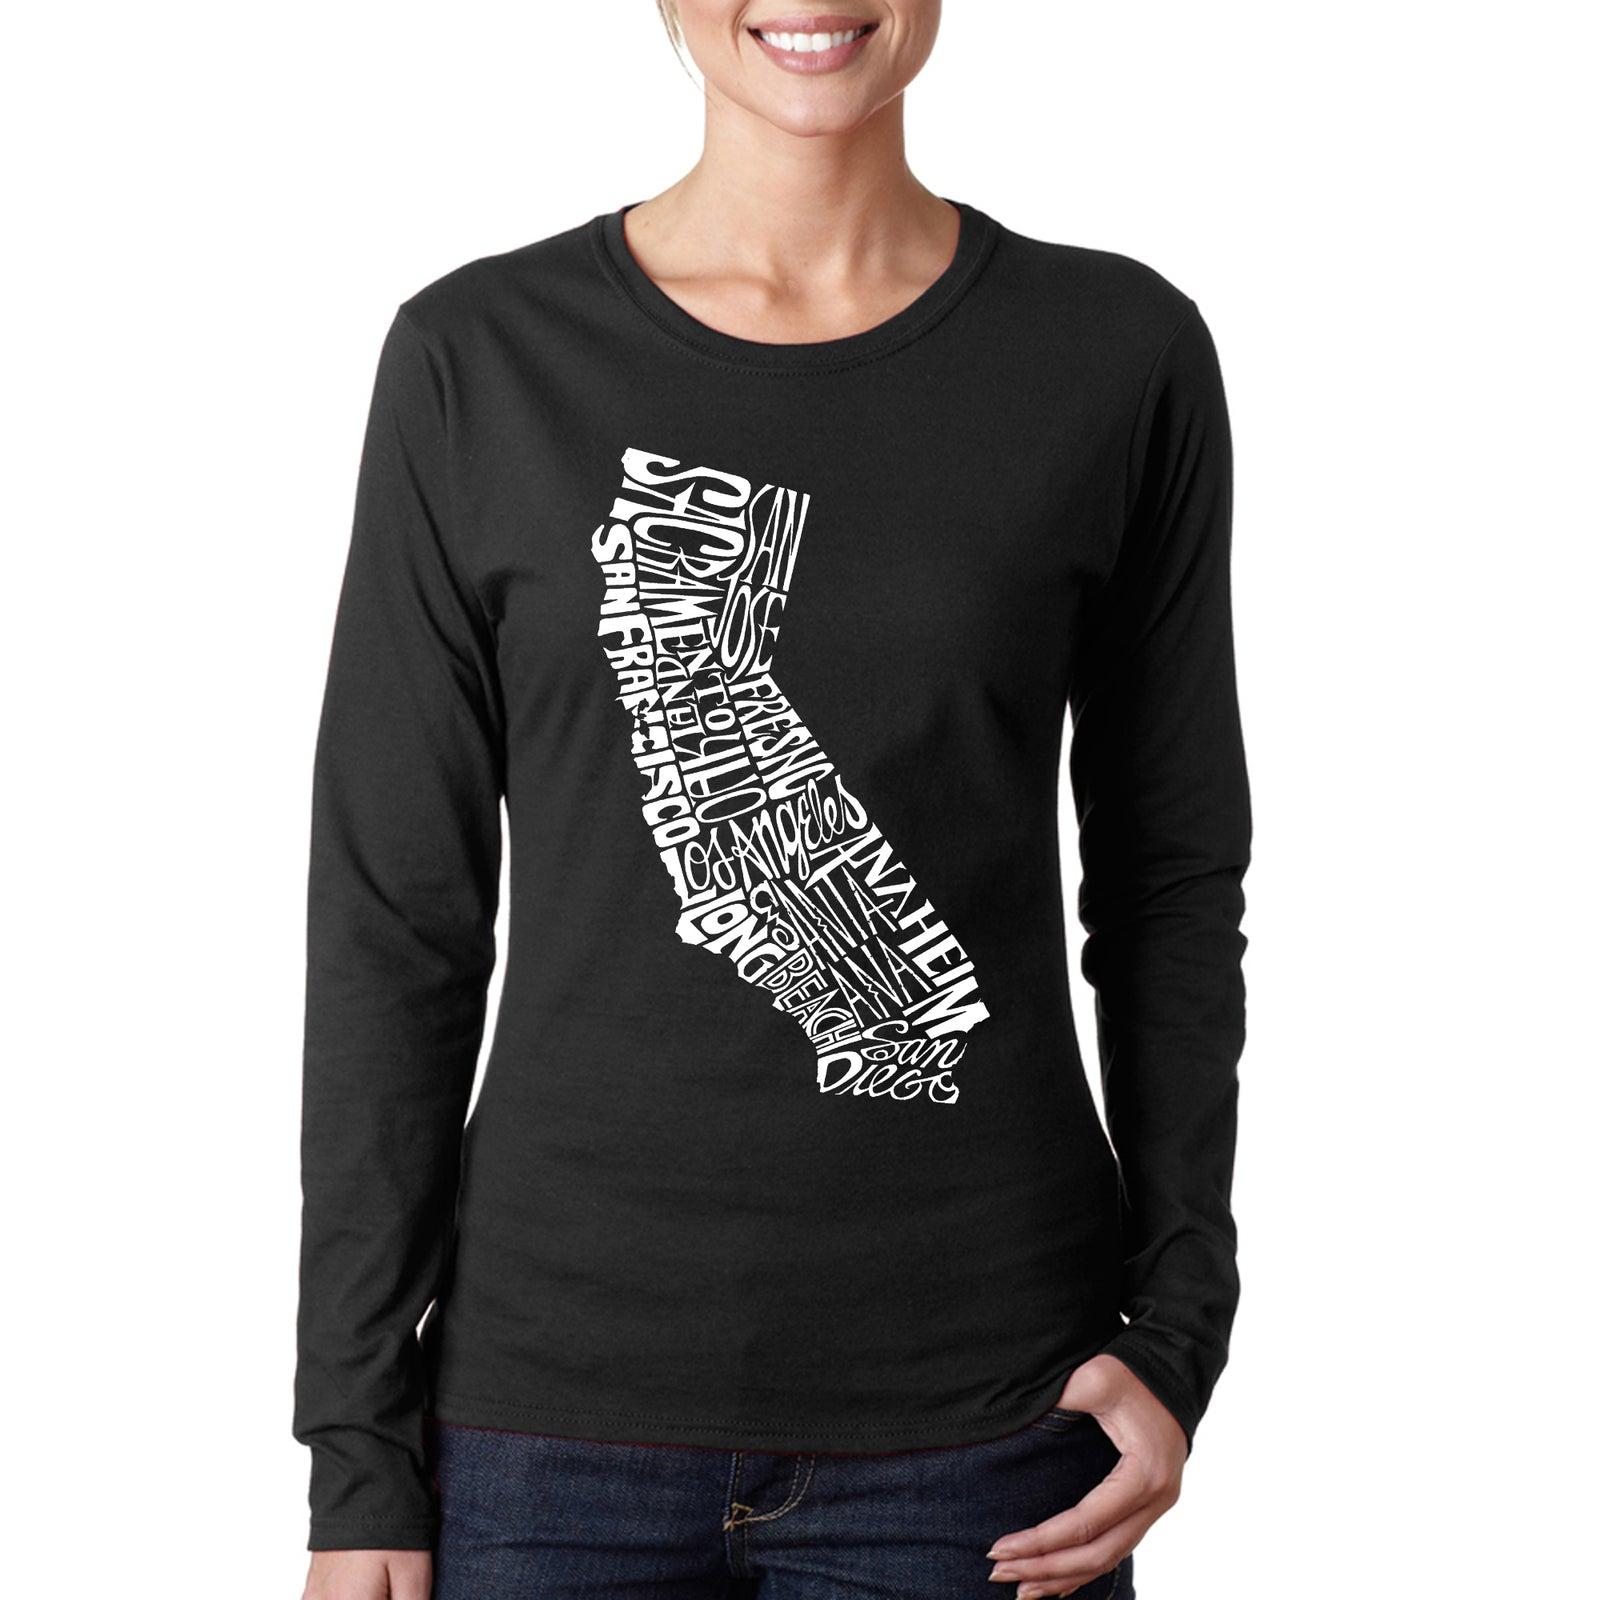 Women's Long Sleeve T-Shirt - California State